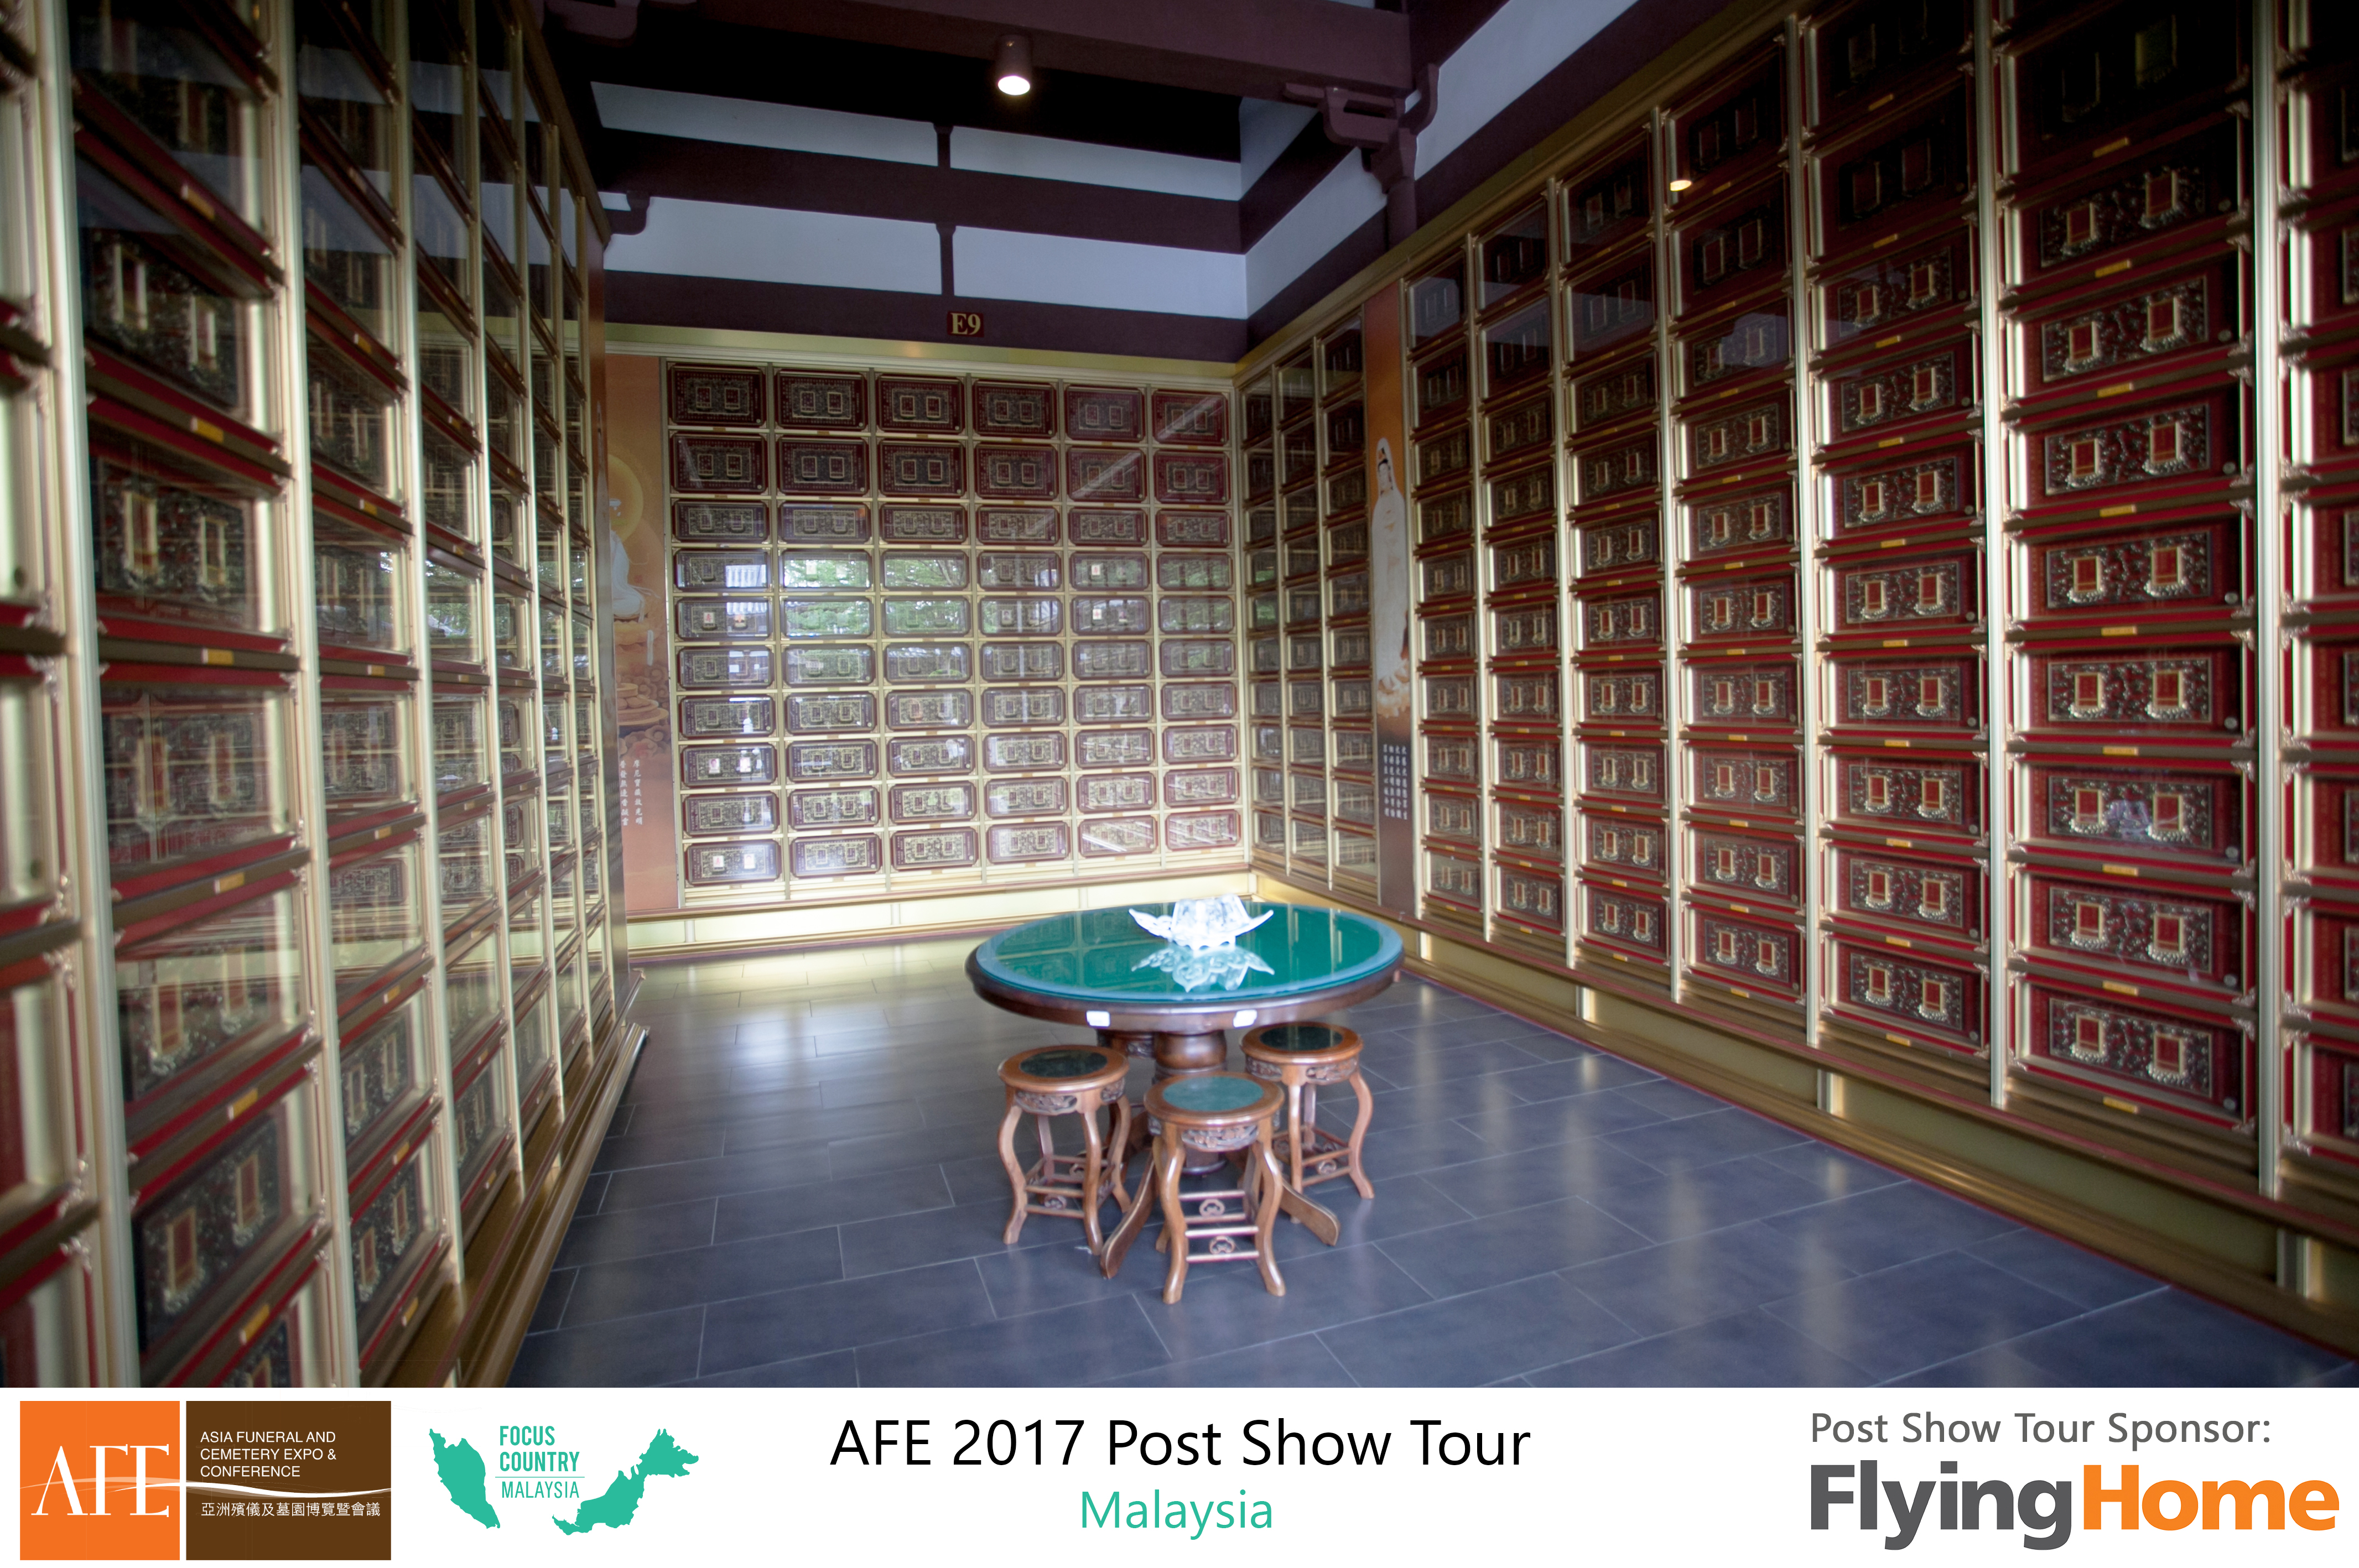 AFE Post Show Tour 2017 Day 2 - 74